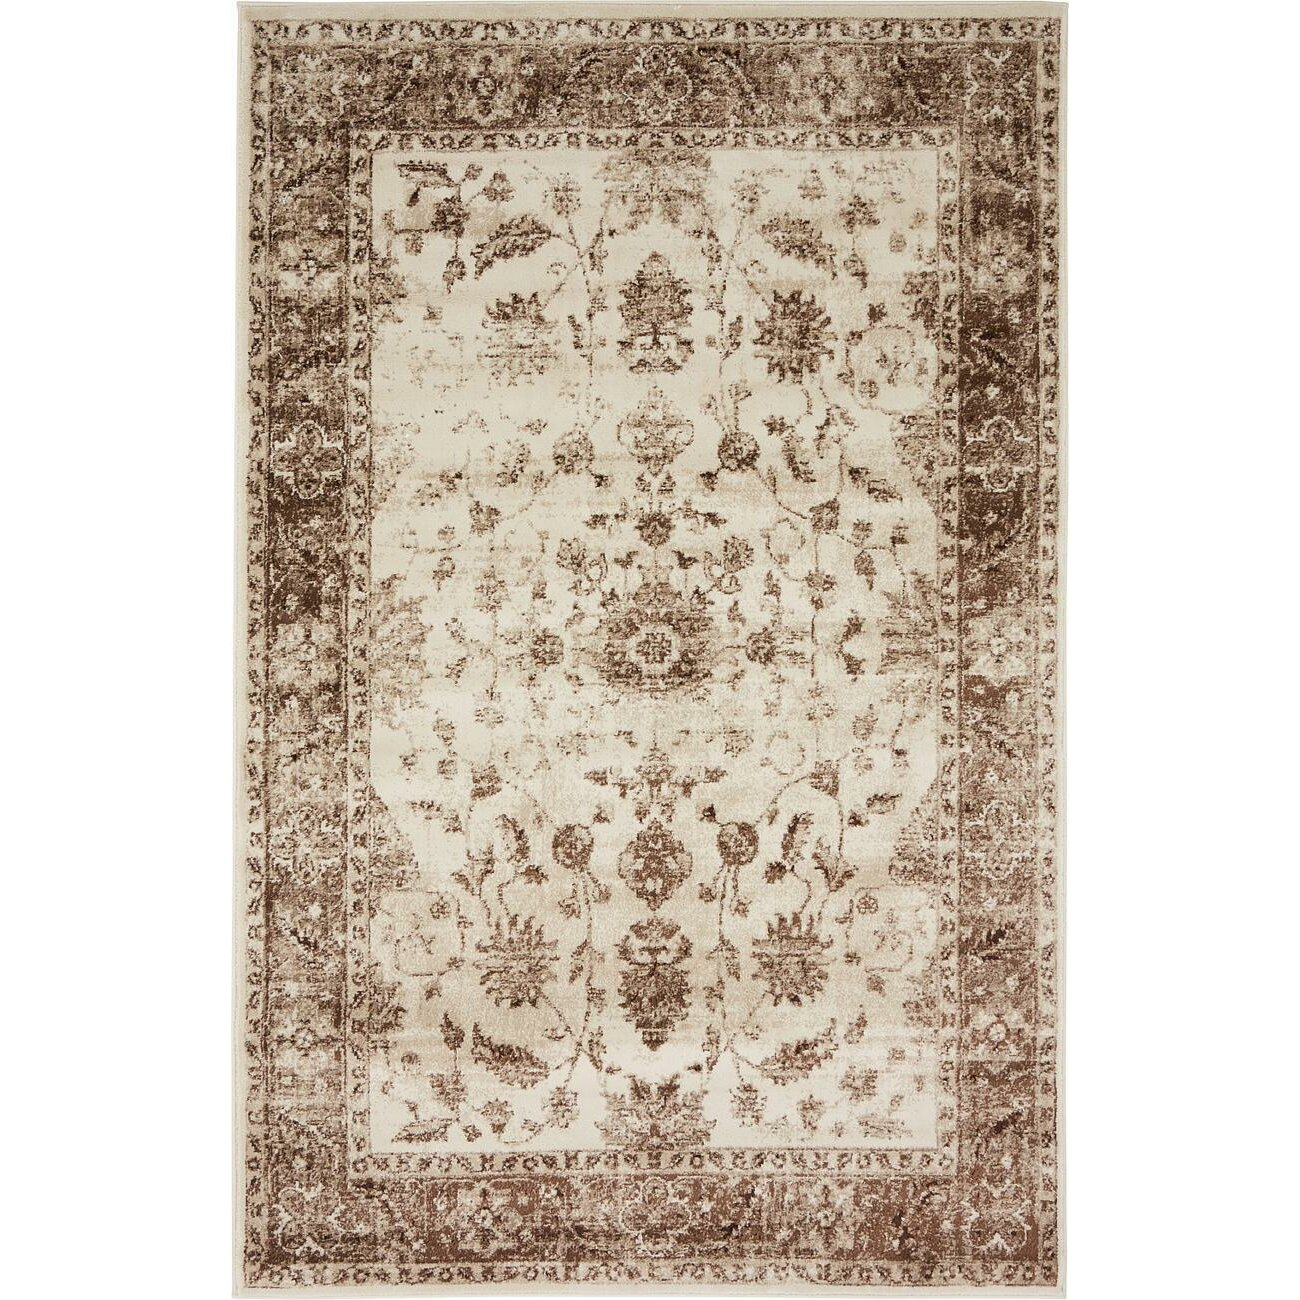 Lark Manor Mathieu Cream Beige Brown Area Rug Amp Reviews